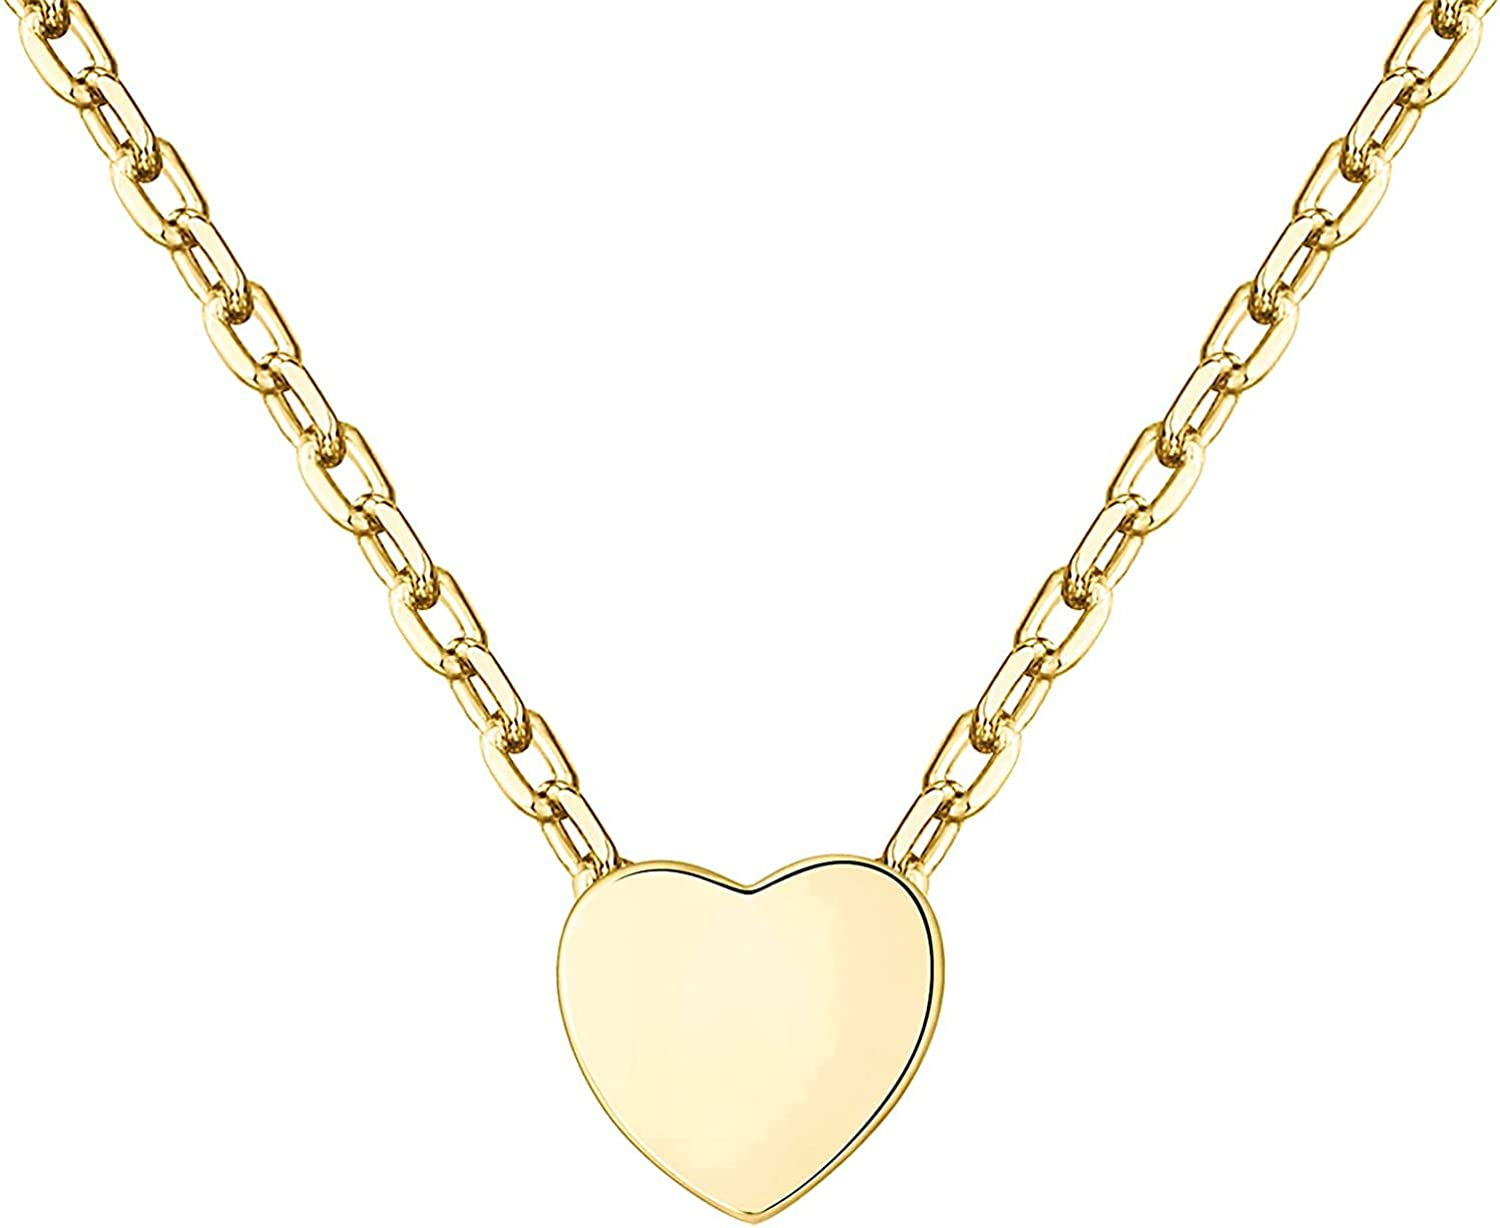 PAVOI 14K Gold Plated Tiny Heart Necklace | Dainty Necklace for Women | Personalized Letter Heart Choker